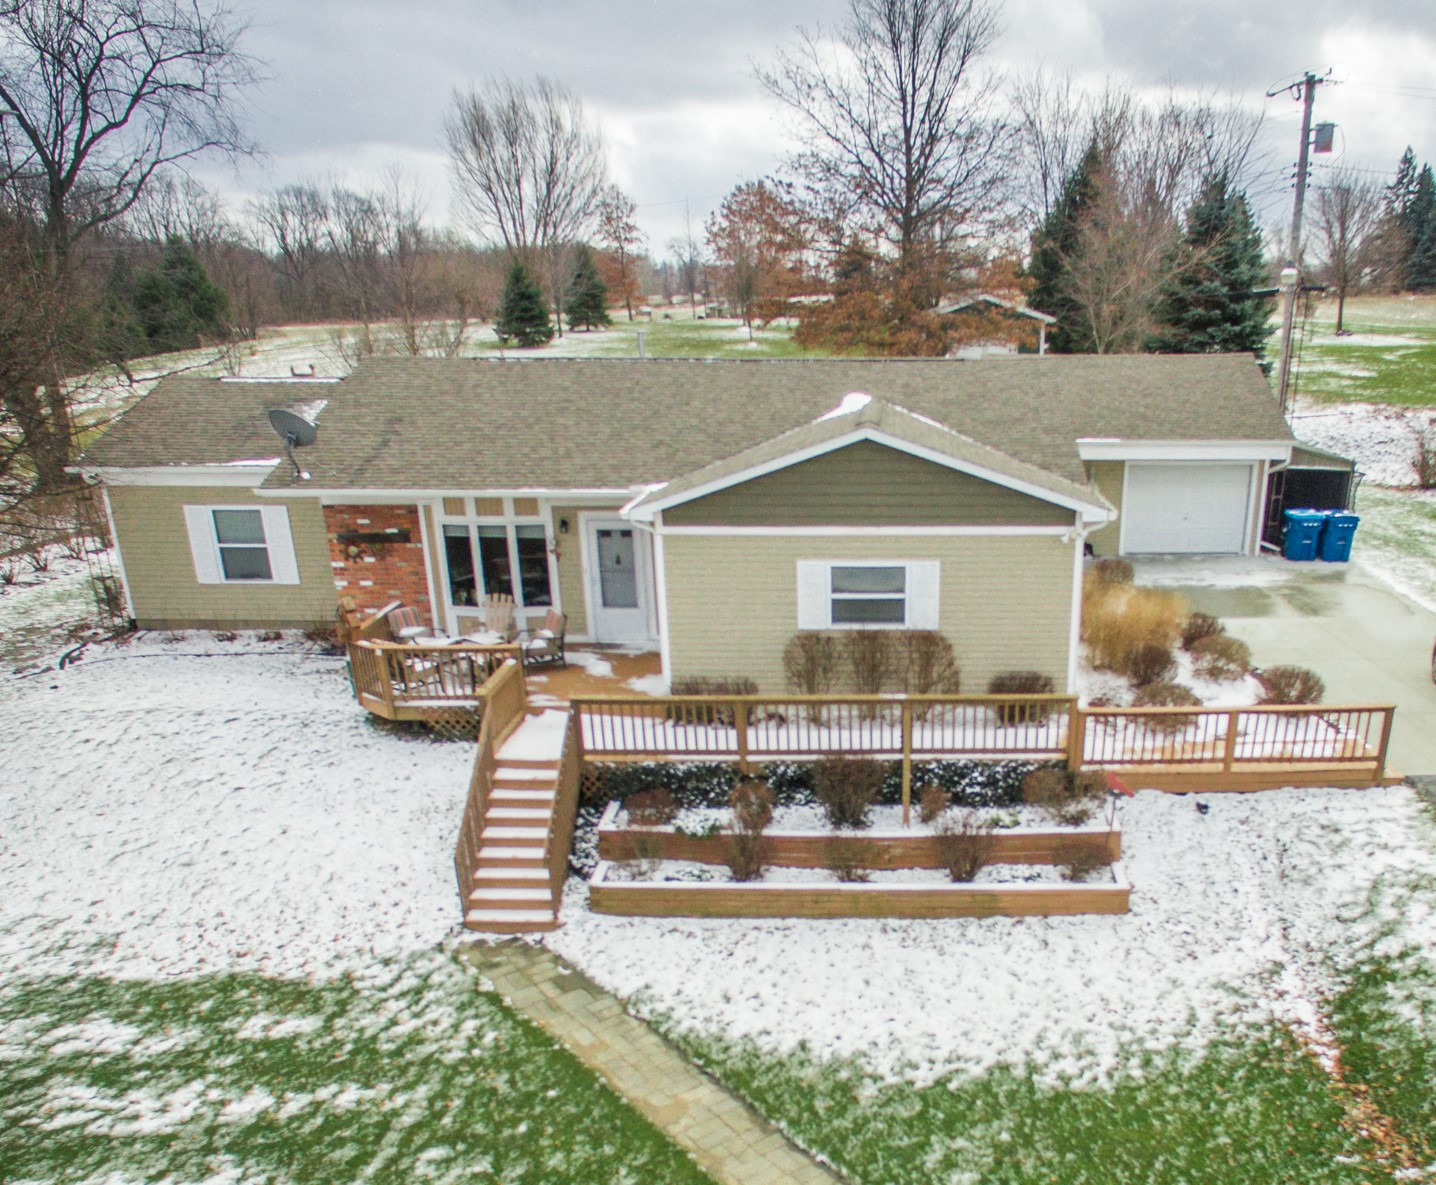 Linden- Fenton - $178,000   DOM 39 / Sold for 99% of asking price / 14 Showings